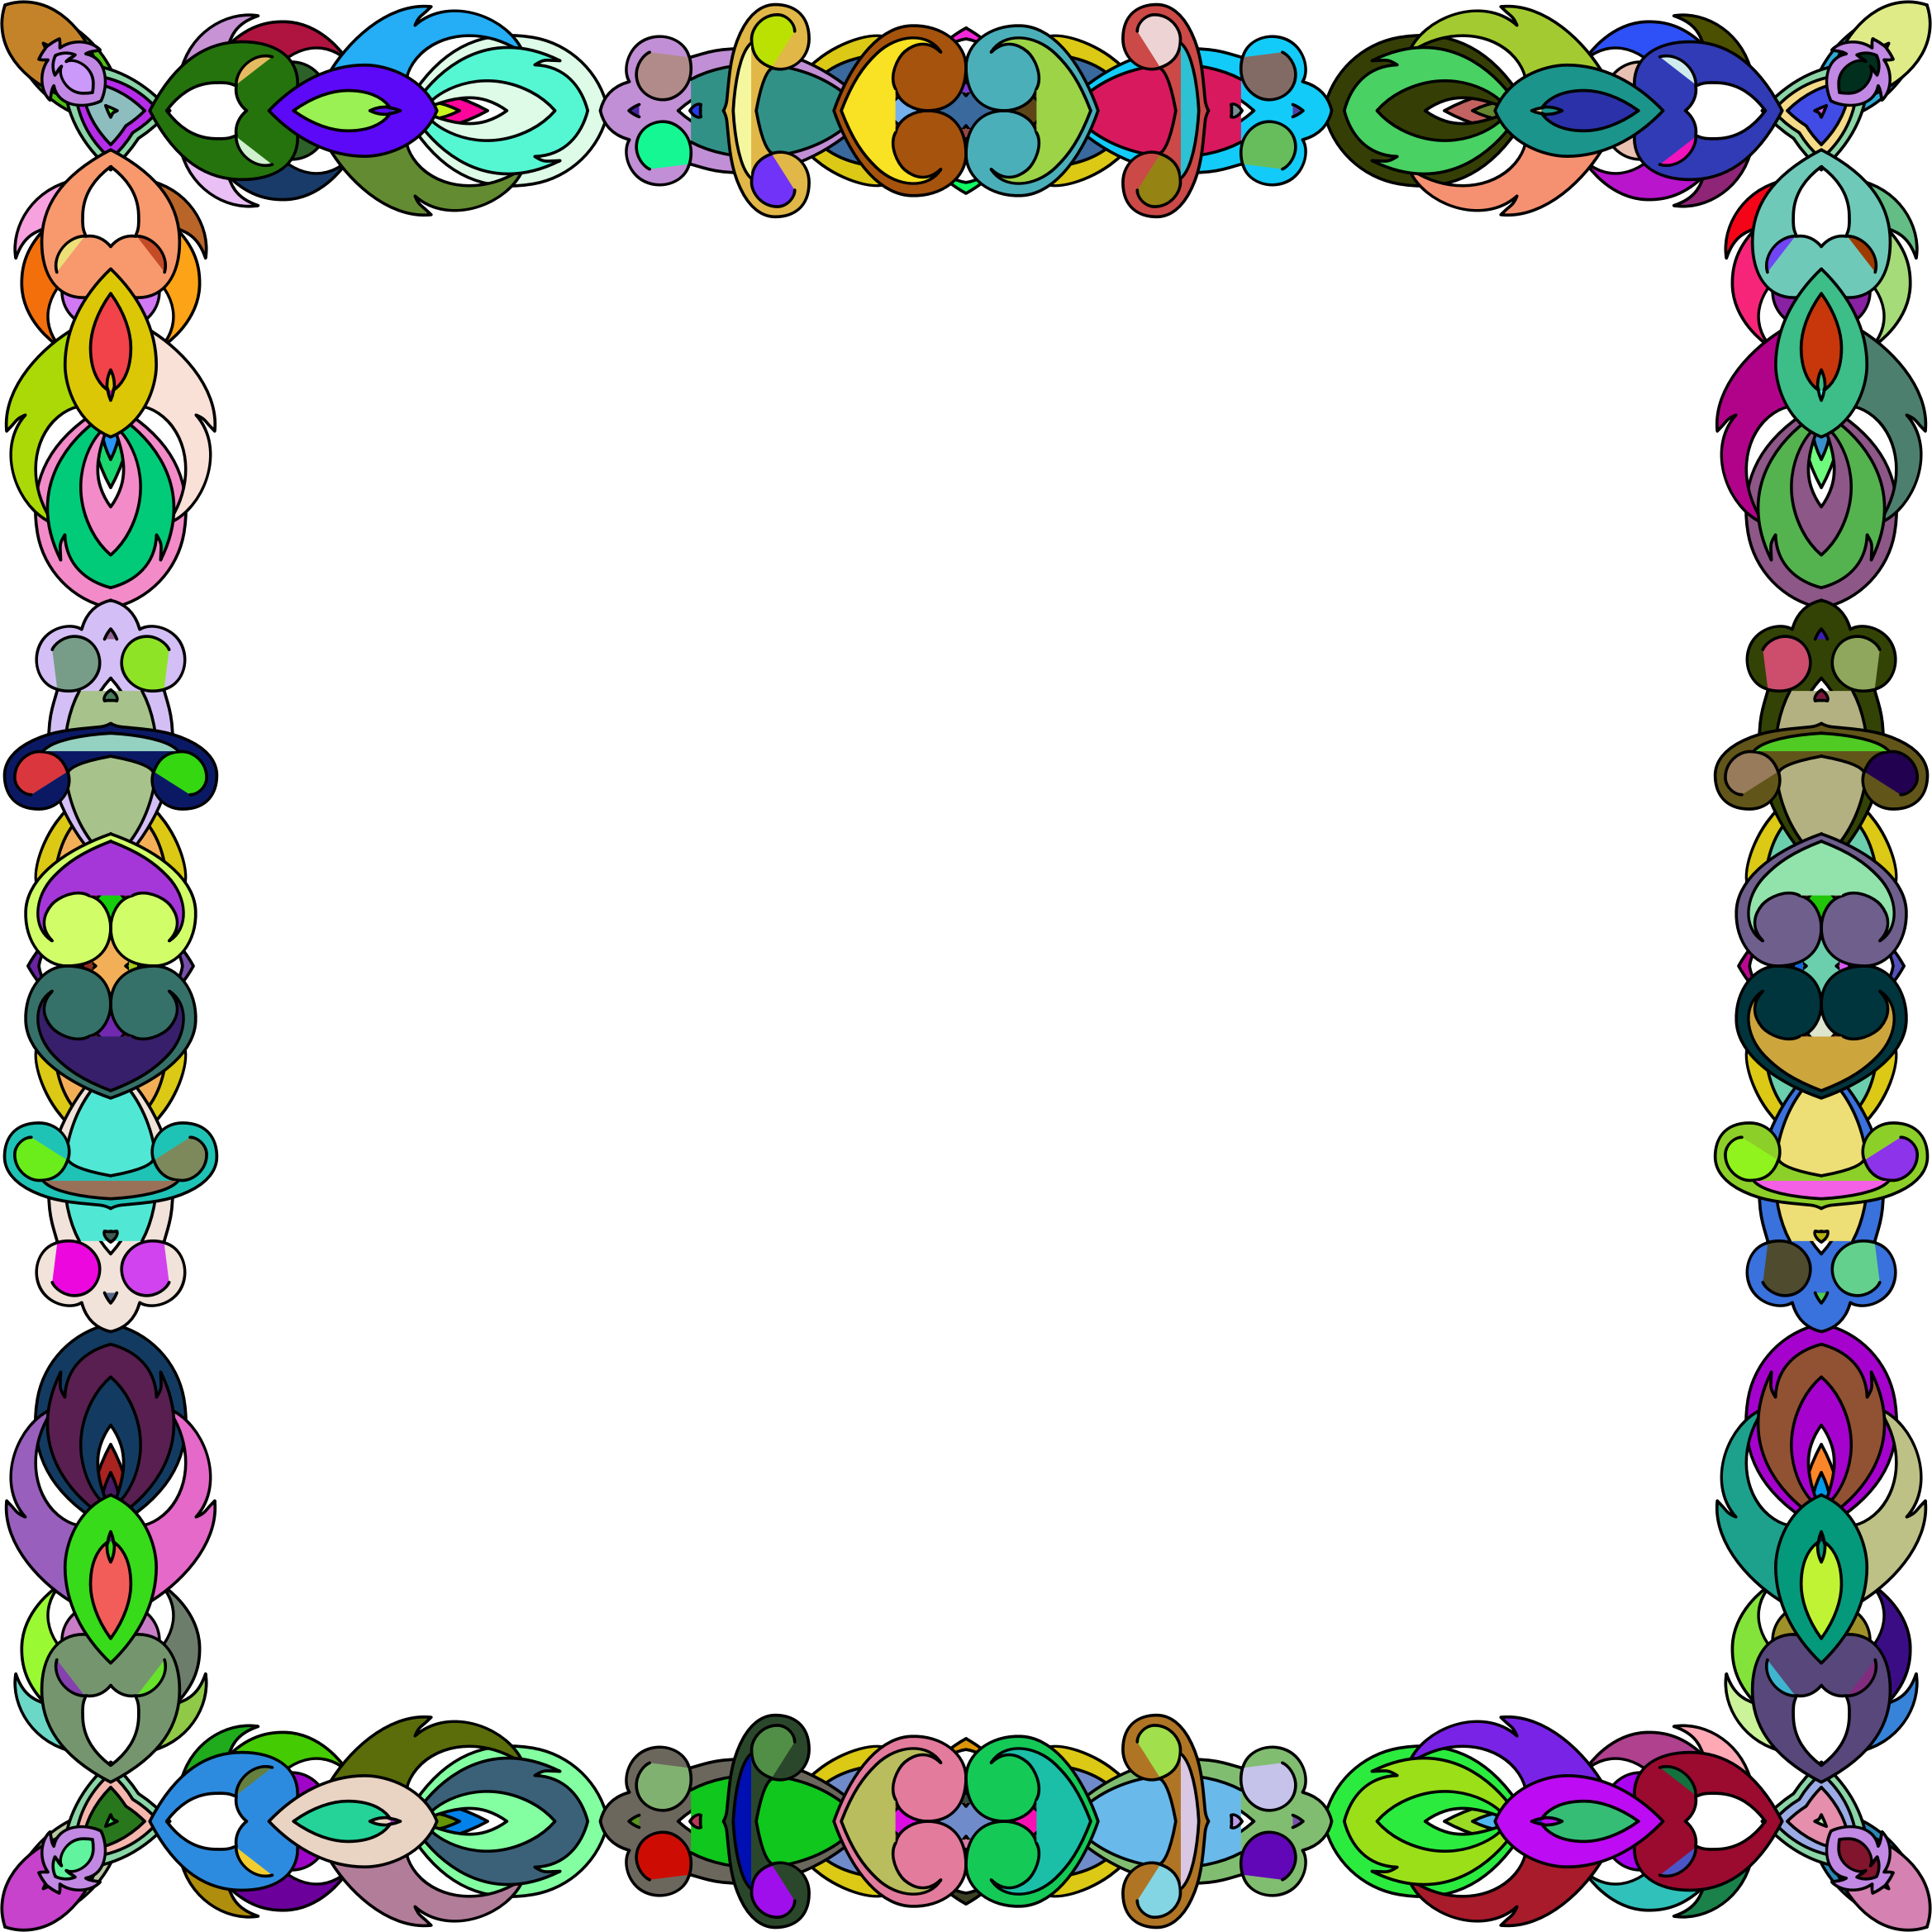 Colorful Abstract Frame 2 by GDJ